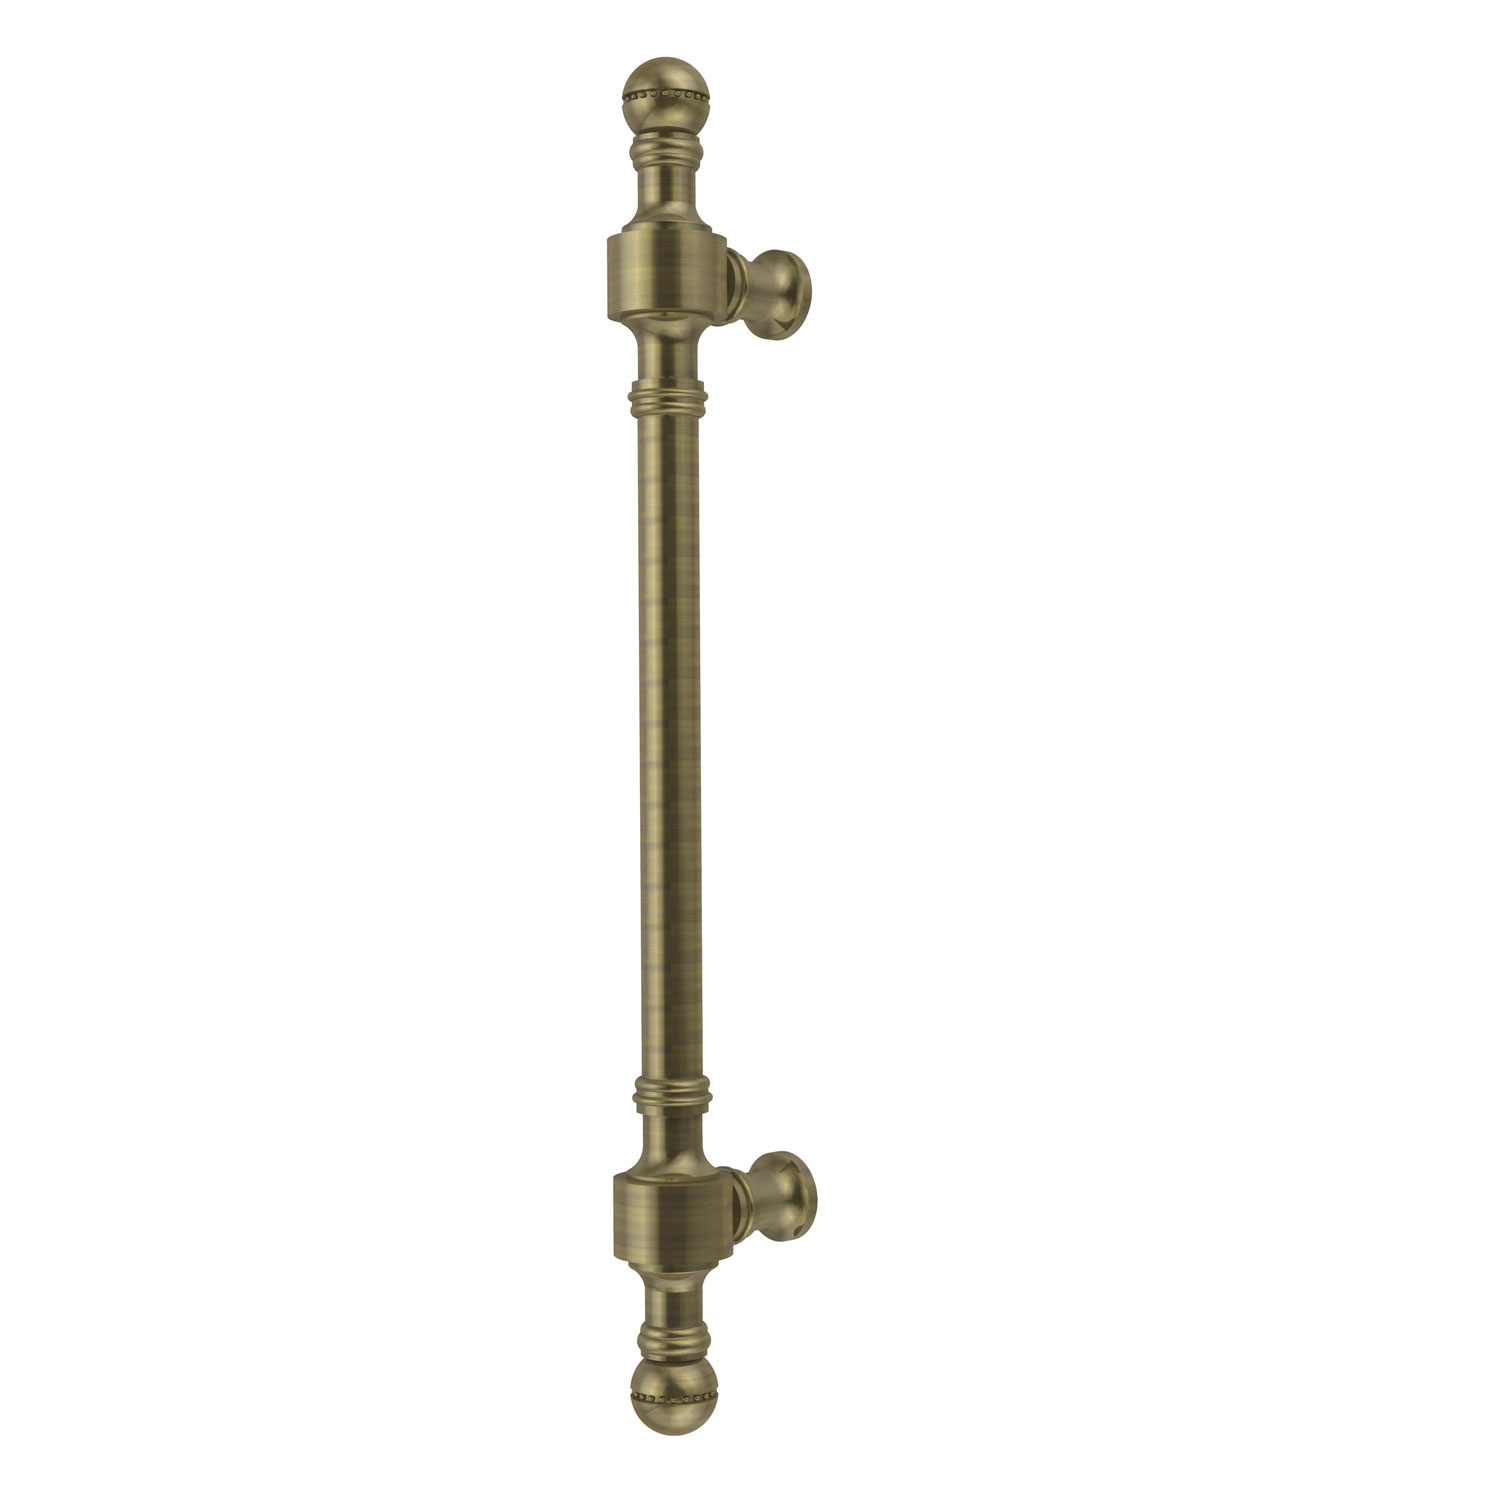 Cabinet Hardware & Knobs Category